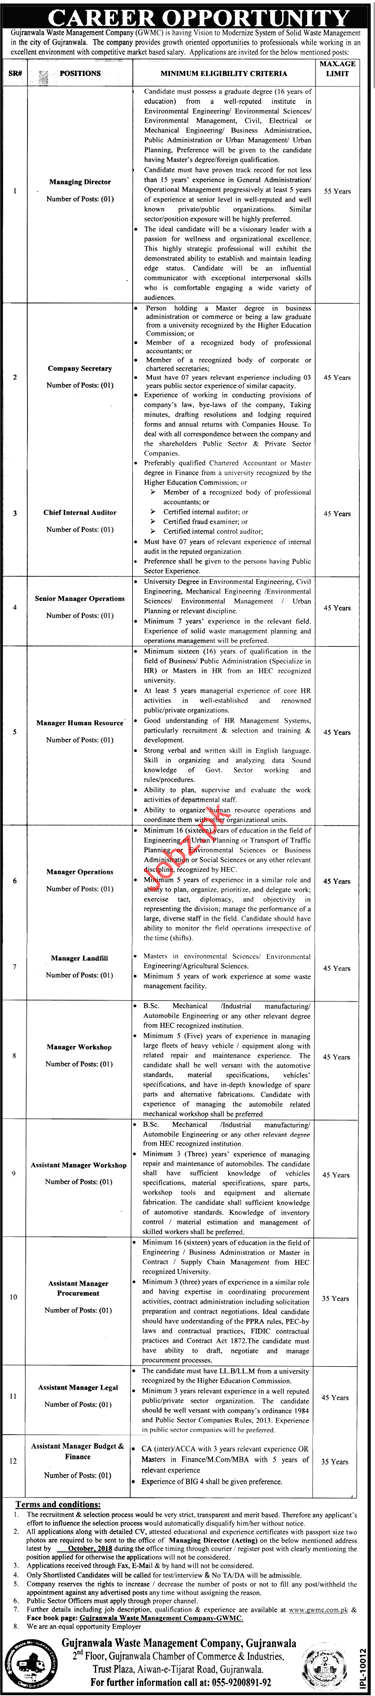 Gujranwala Waste Management Company Managing Director Jobs